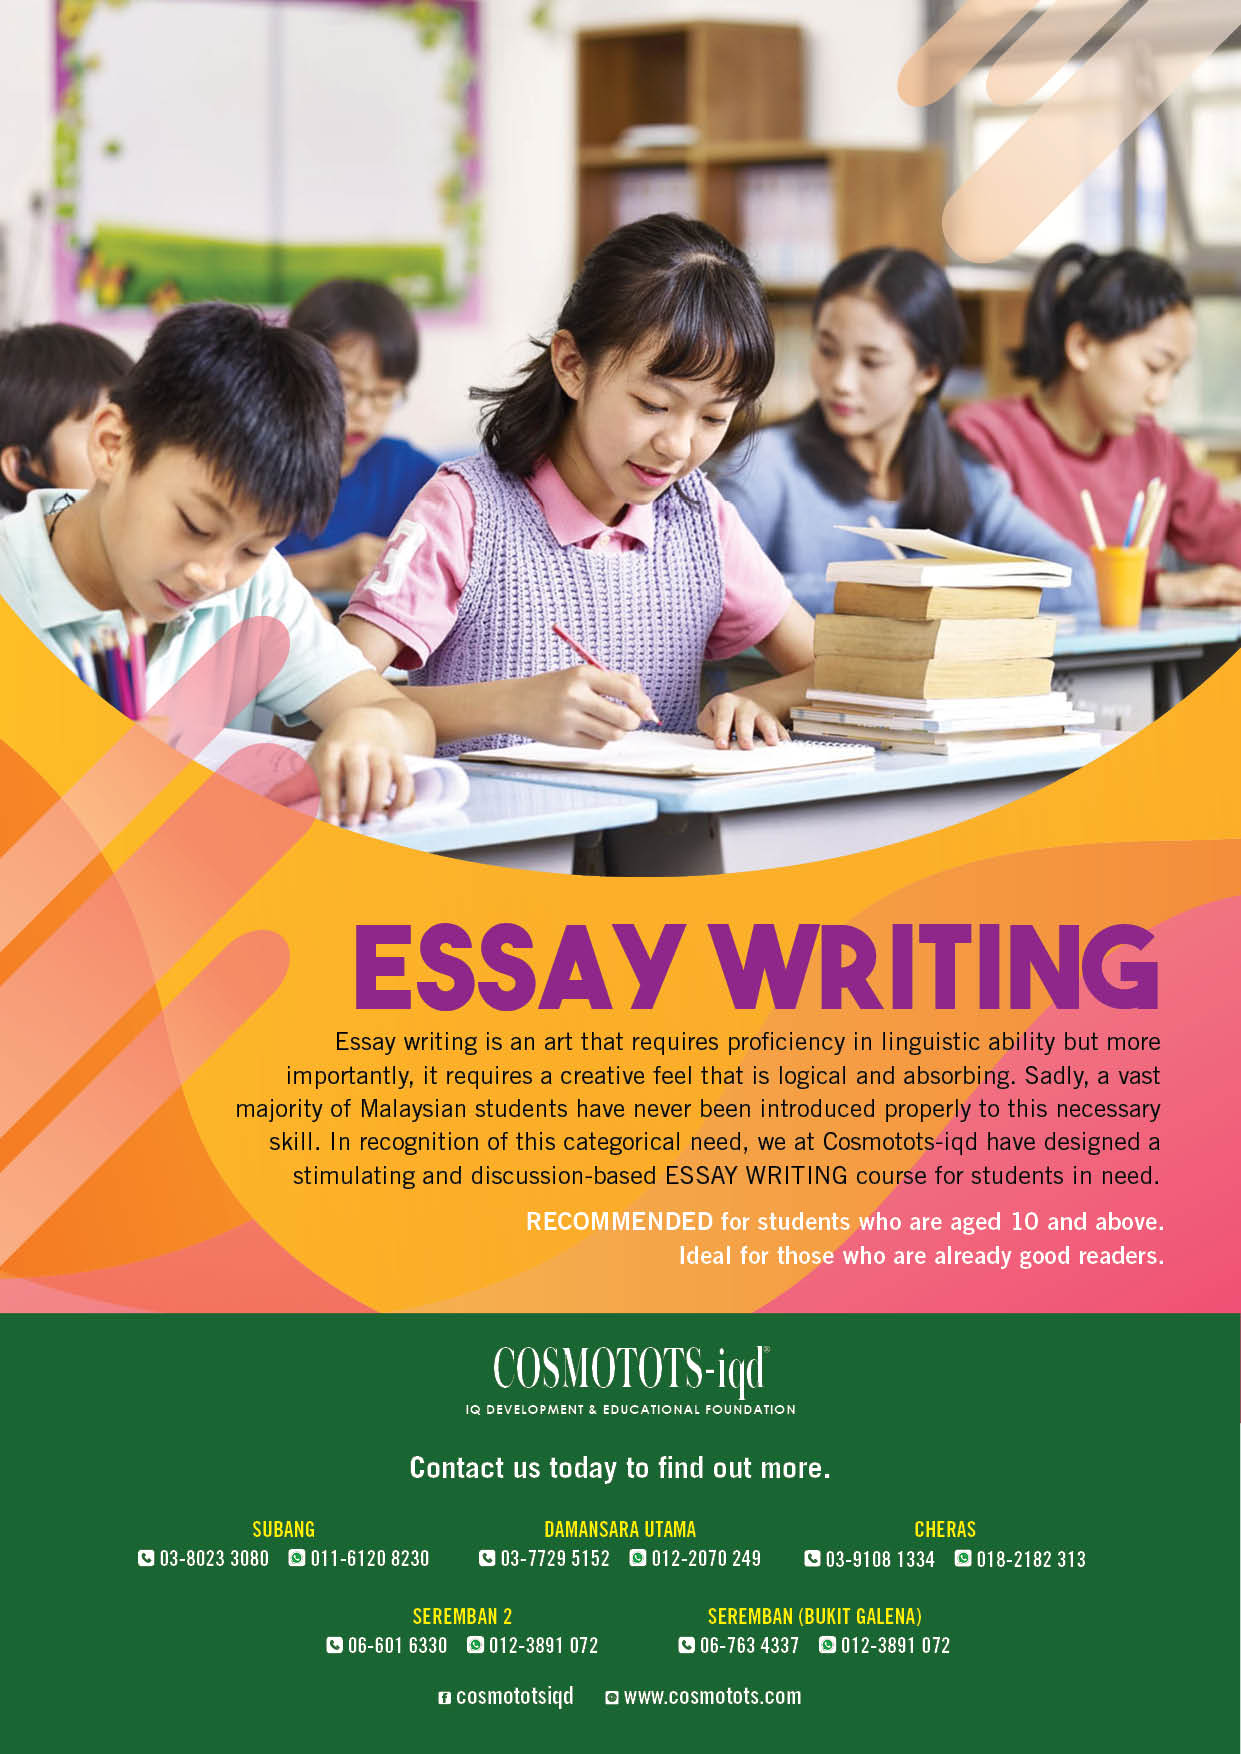 Essay Writting Poster-2